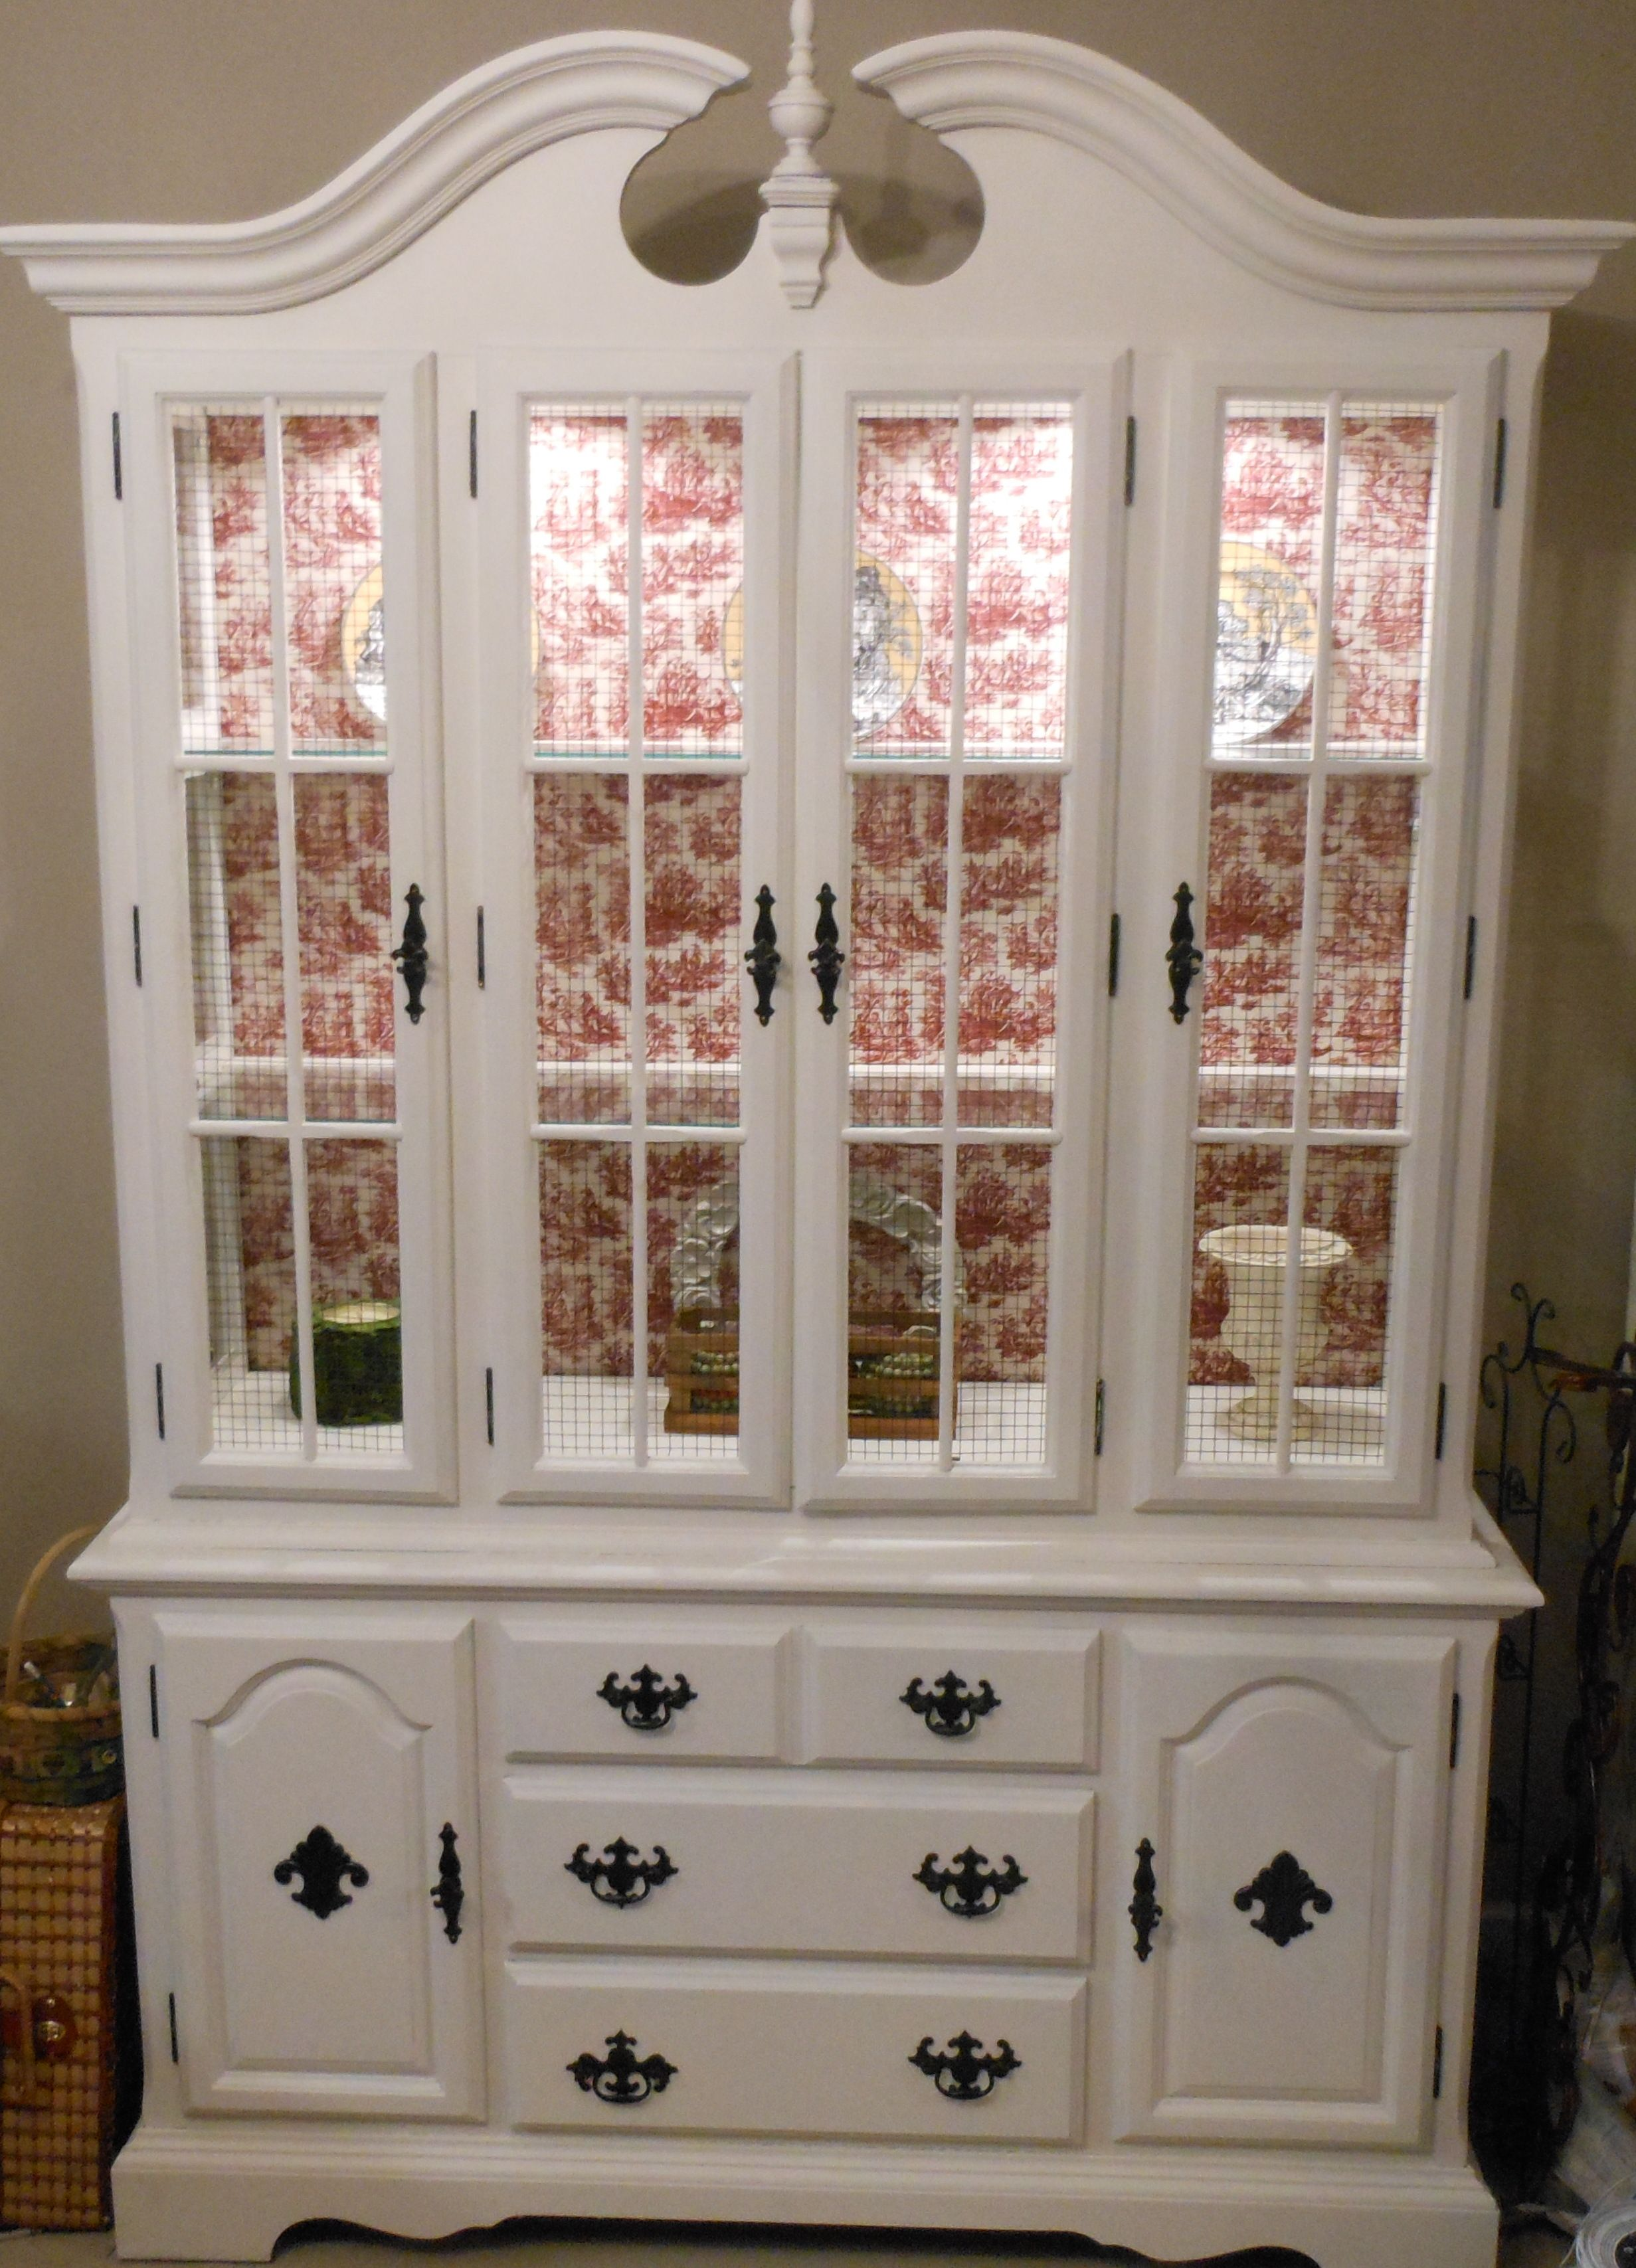 French Country hutch.  This was a dark cherry hutch when I found it.  I used Zinzer primer (don't need to sand the wood with this stuff).  I painted 2 coats of Antique White and spray painted the pulls and knobs black (found these Fluer De Lis knobs for all of the doors and appliques for the bottom doors at Hobby Lobby and spray painted them) and added chicken wire (primer and spray painted black) to the top doors. I also pulled the back panels off (which were initially mirrors) and wrapped…